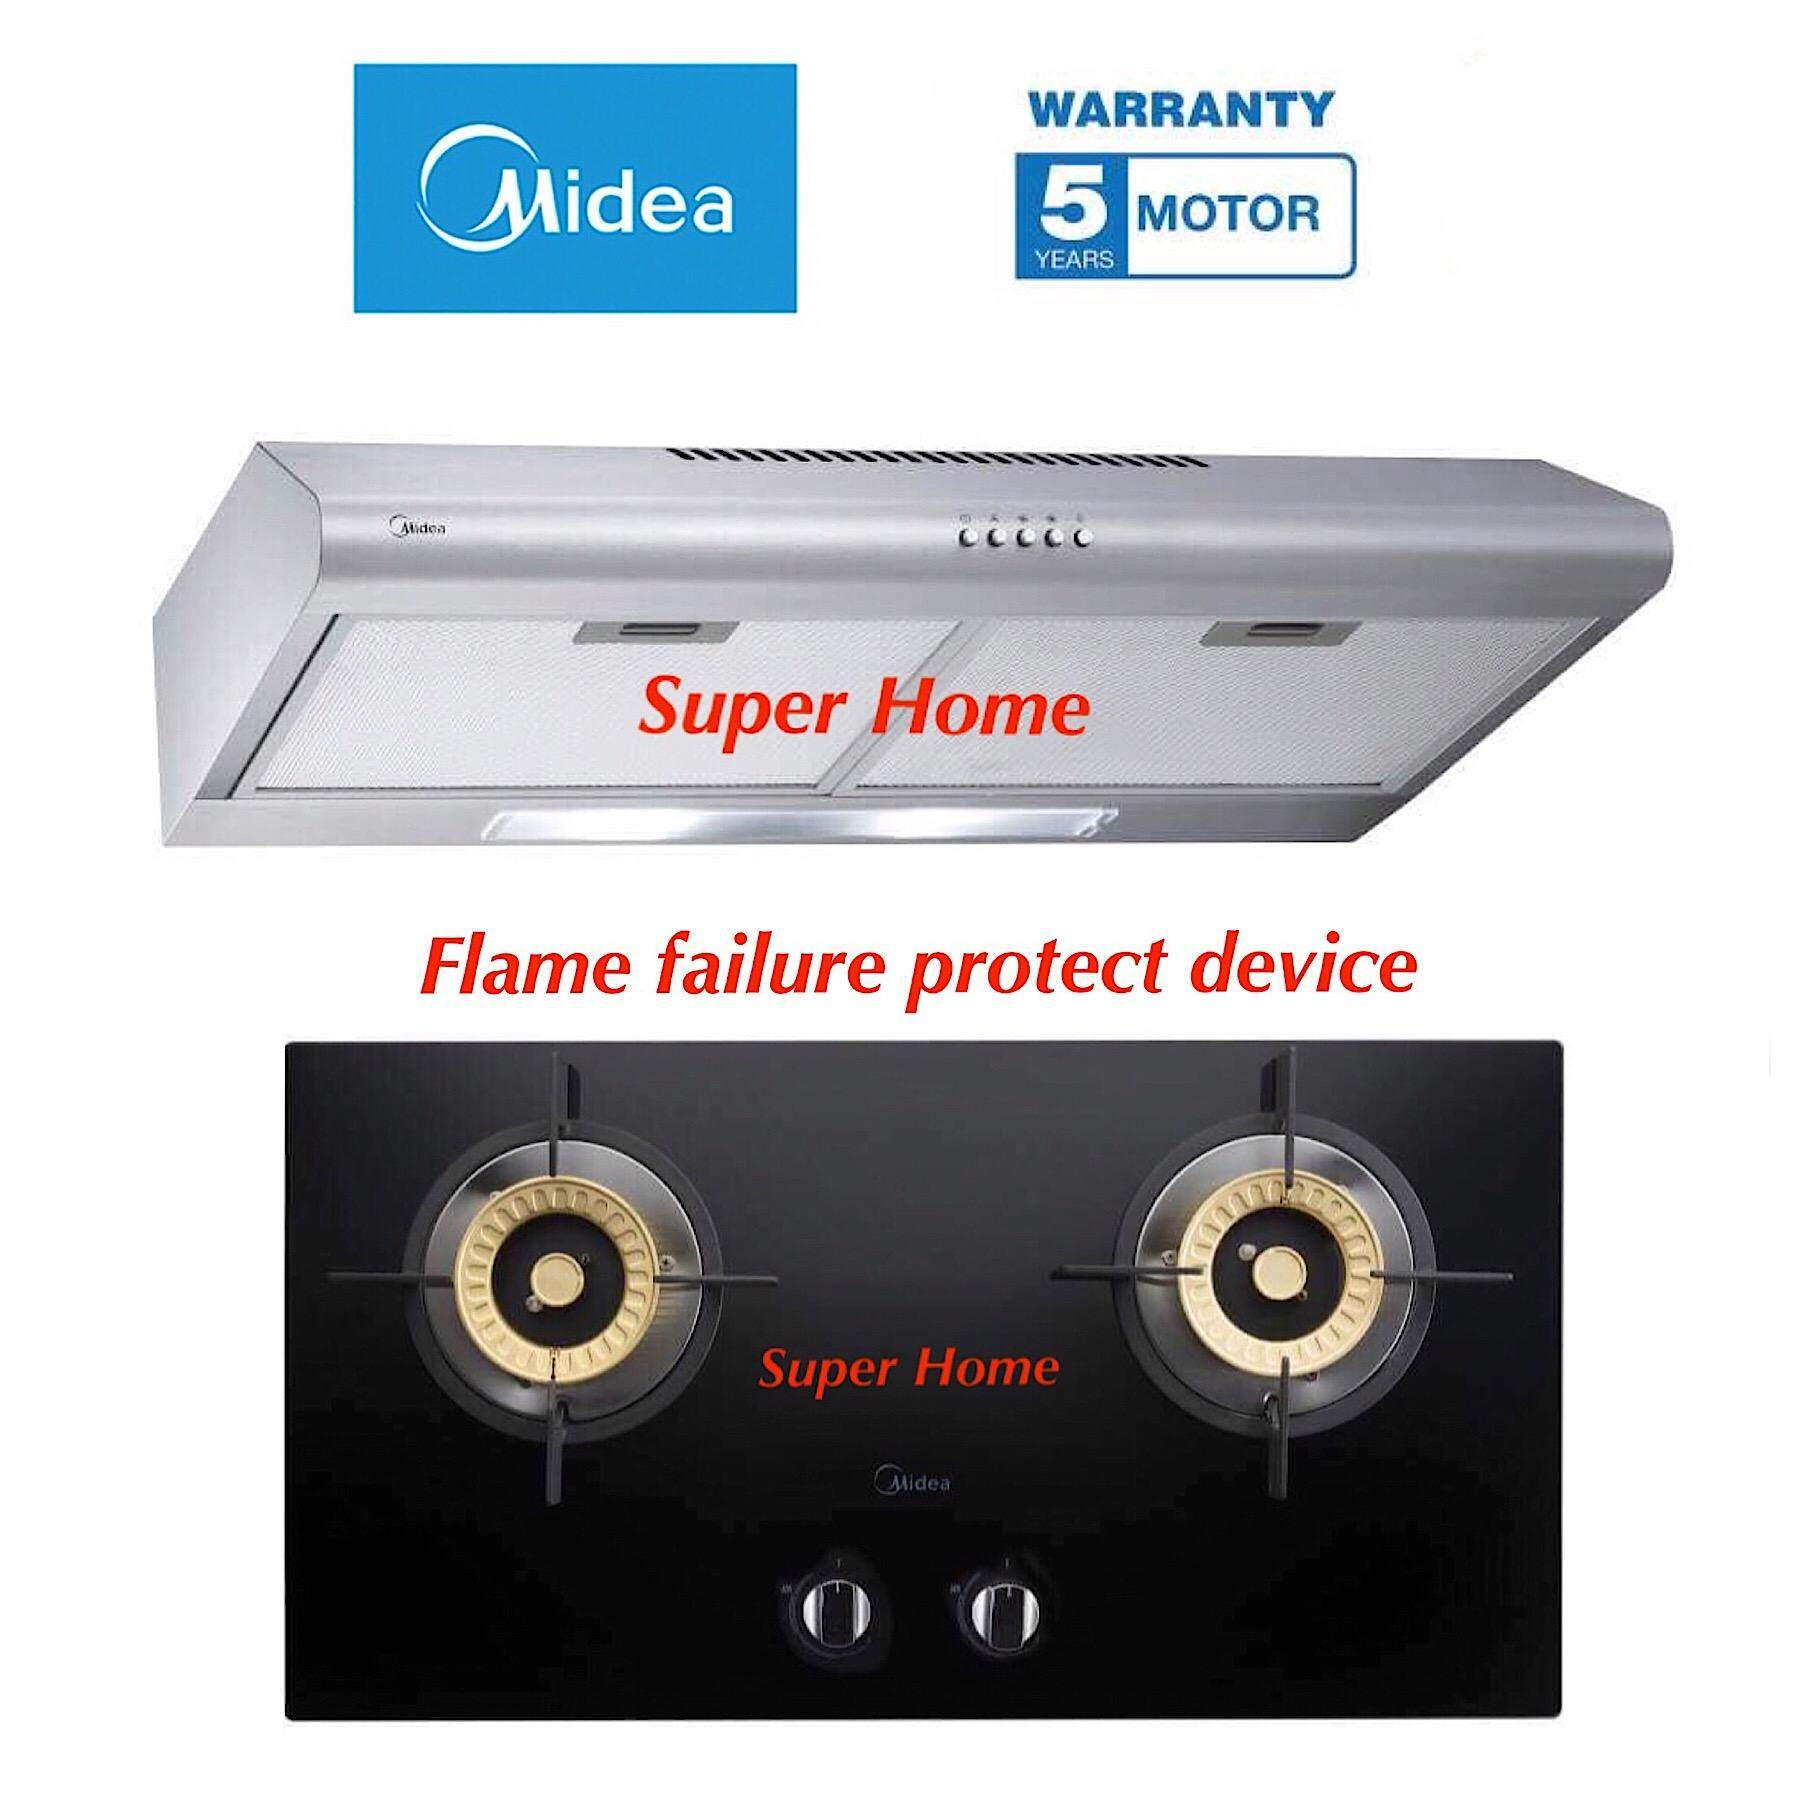 Midea MCH-76MSS Slim Cooker Hood 2.5Feet(76CM) - Stainless Steel + Midea MGH-2408GL Built-in Glass Gas Hob with protect device